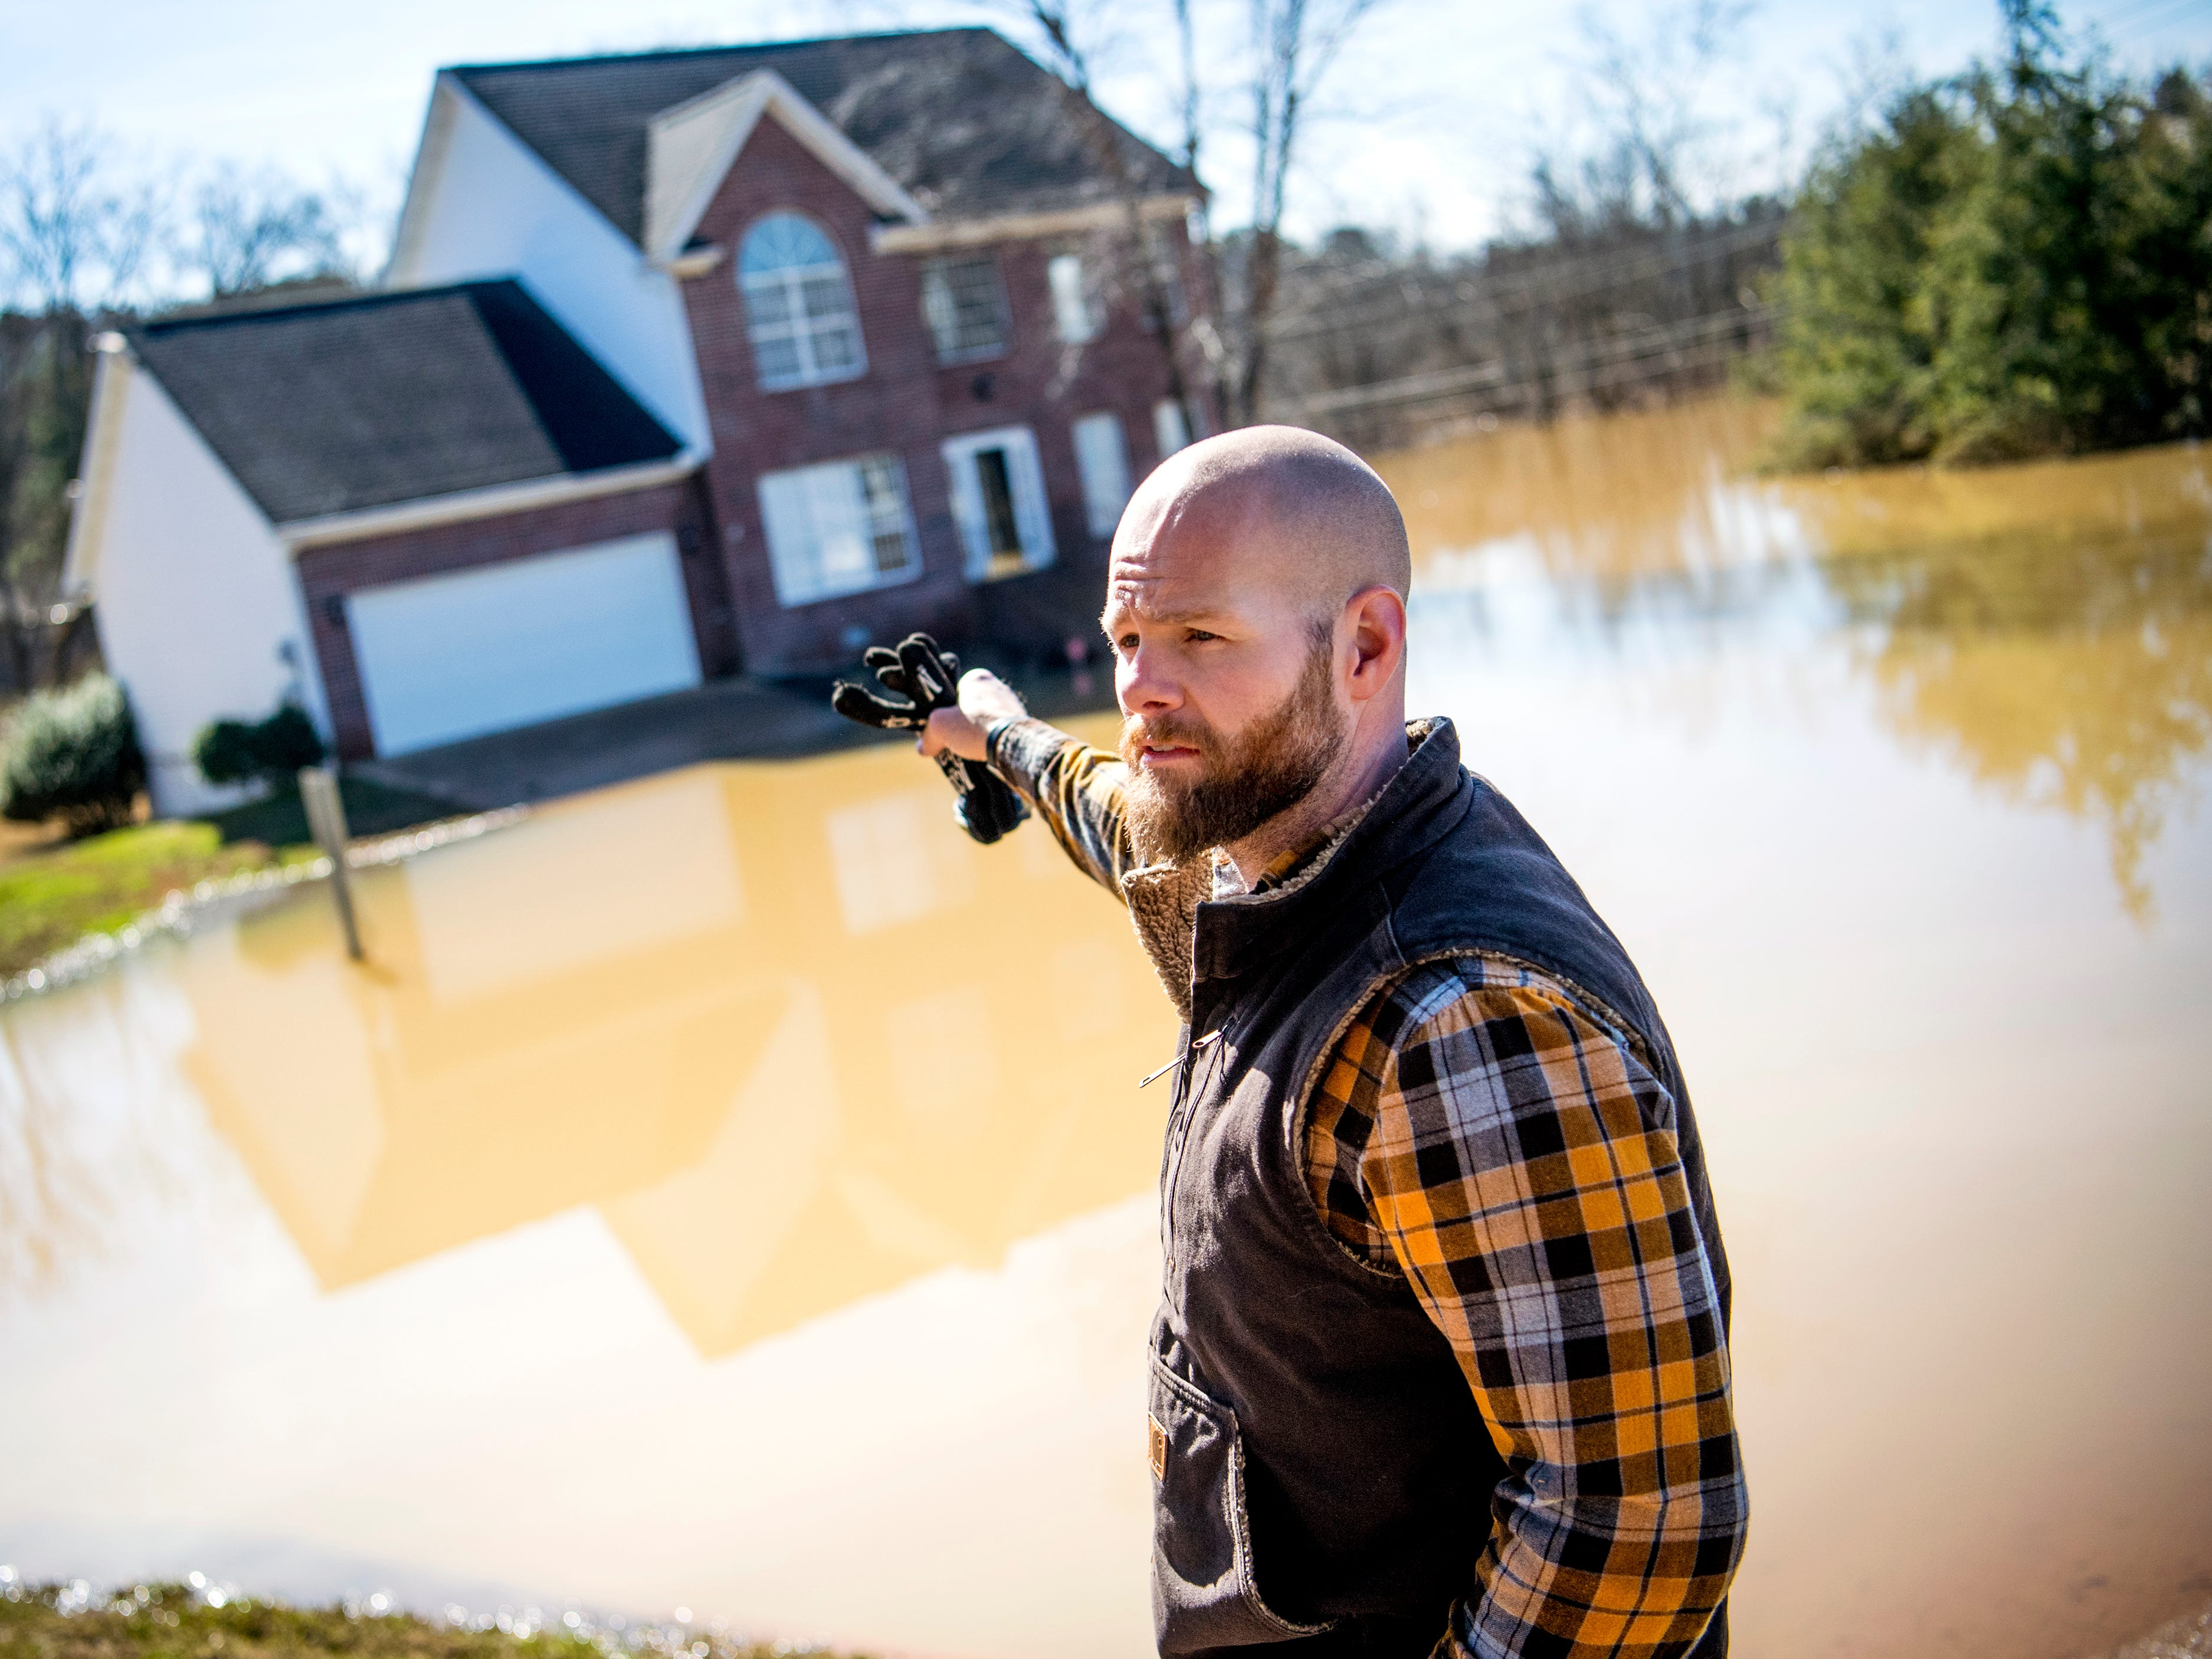 Jeff Macklin points back at expansive flooding on Ebenezer Road near the Lennox Place subdivision in Knoxville on Monday, February 25, 2019. Macklin's basement flooded with seven feet of water on Saturday, and the water is now at about three feet deep in his basement as of Monday.